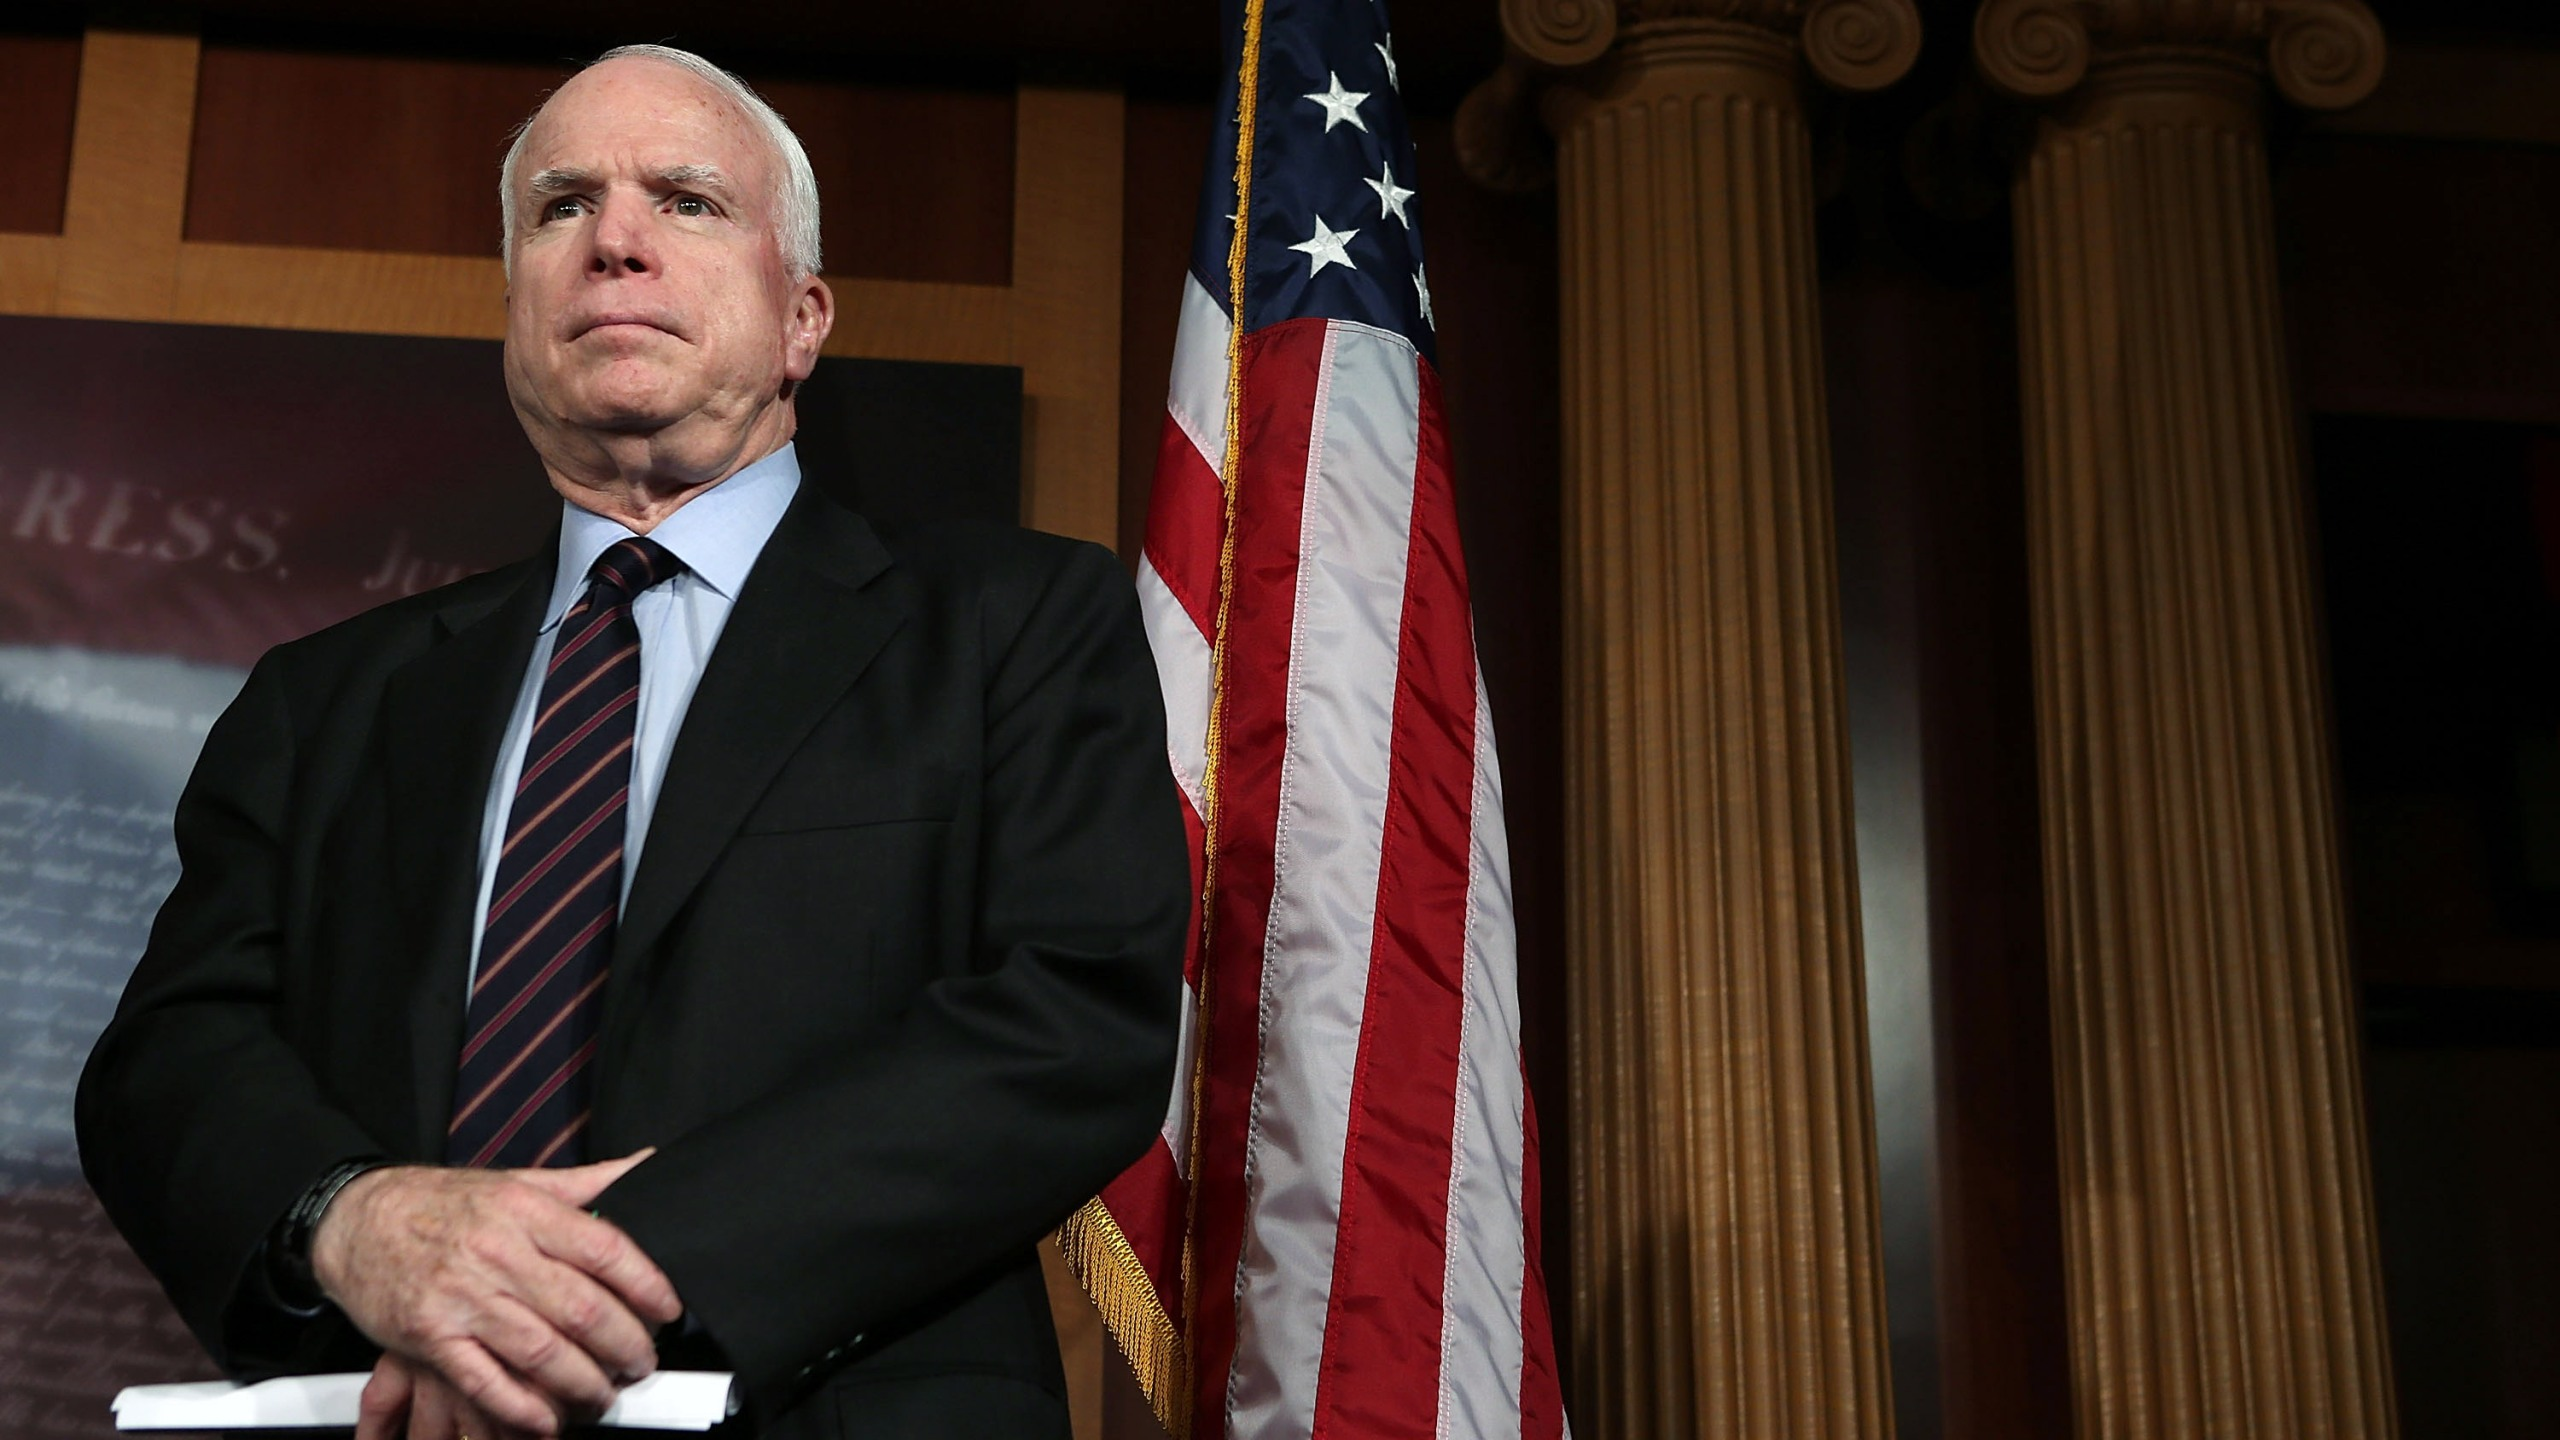 Sen. John McCain (R-AZ) is seen on December 6, 2012 on Capitol Hill in Washington, DC. (Credit: Alex Wong/Getty Images)